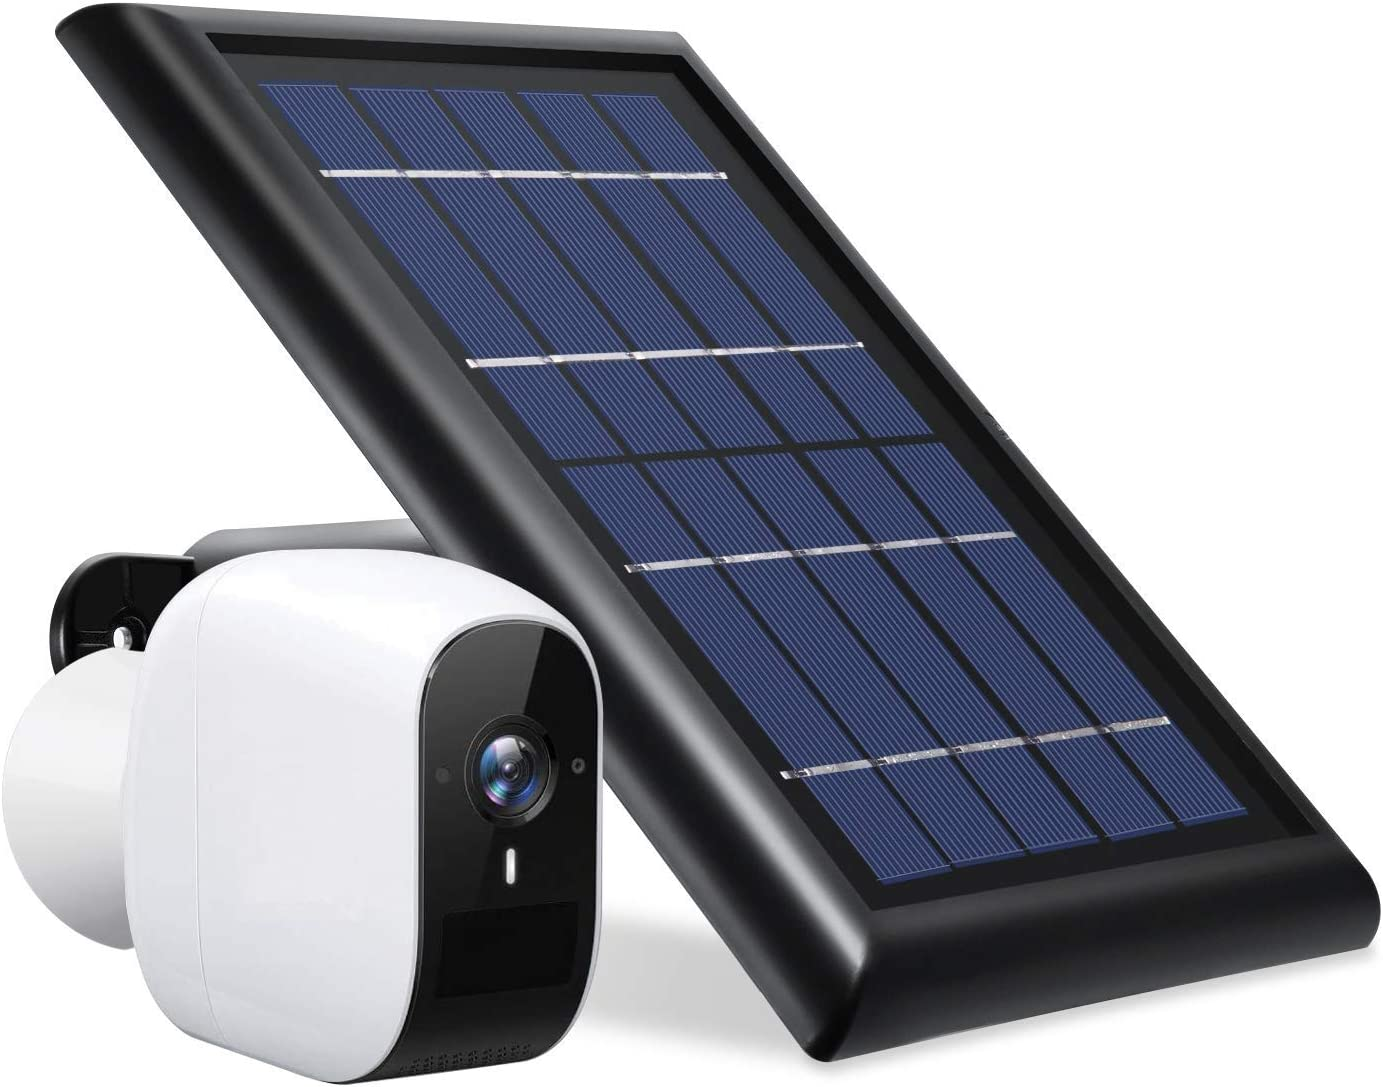 Wasserstein Solar Panel Compatible with eufyCam E Wireless Security Camera ONLY - Power Your eufyCam Surveillance Camera Continuously (Black) (NOT Compatible with eufyCam 2/2C)